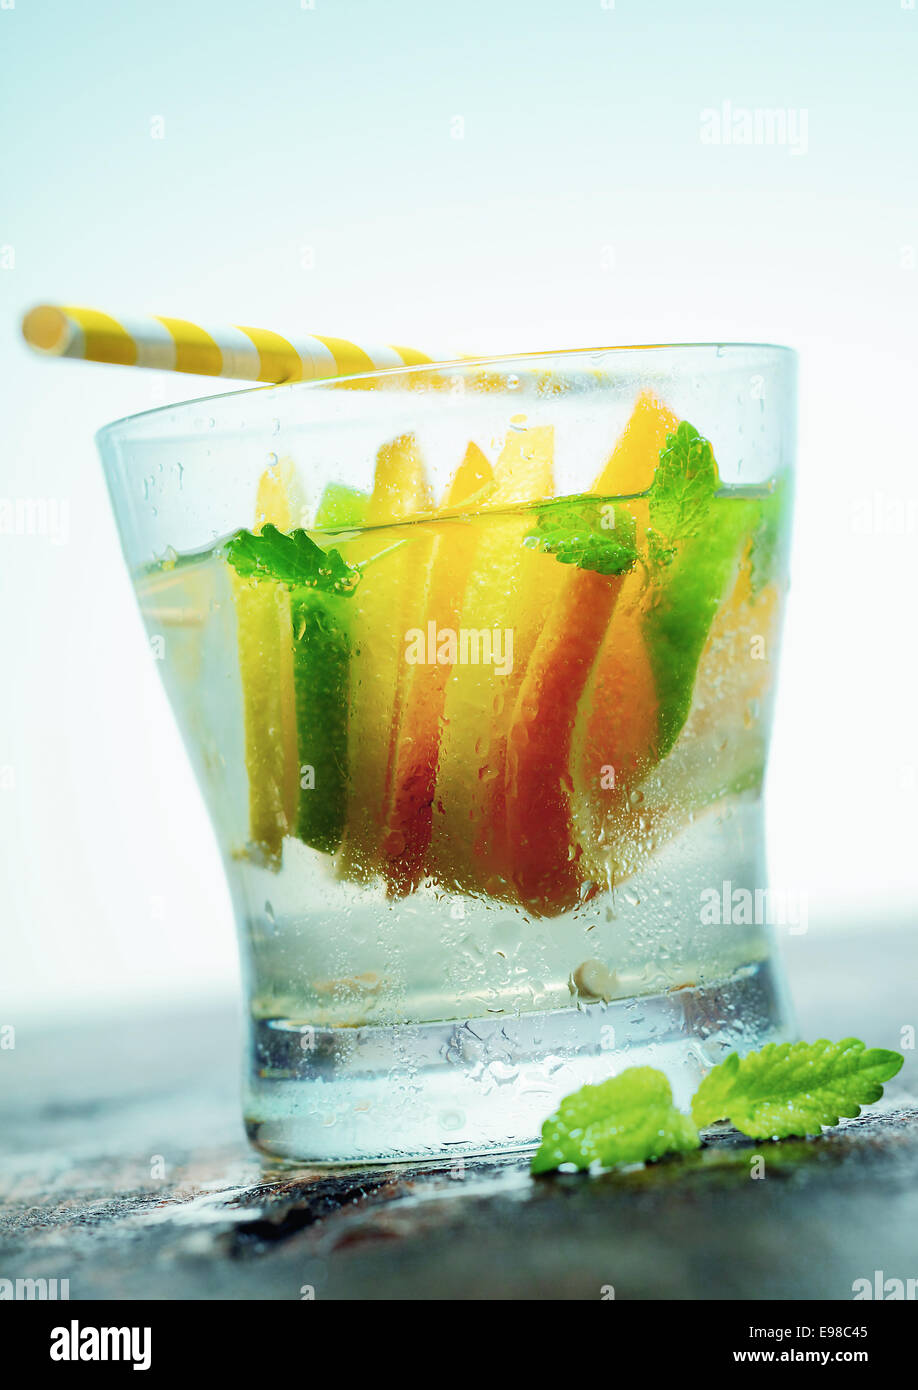 Glass of refreshing iced vodka or gin with slices of tangy citrus and fresh leaves of mint served on an old wooden - Stock Image